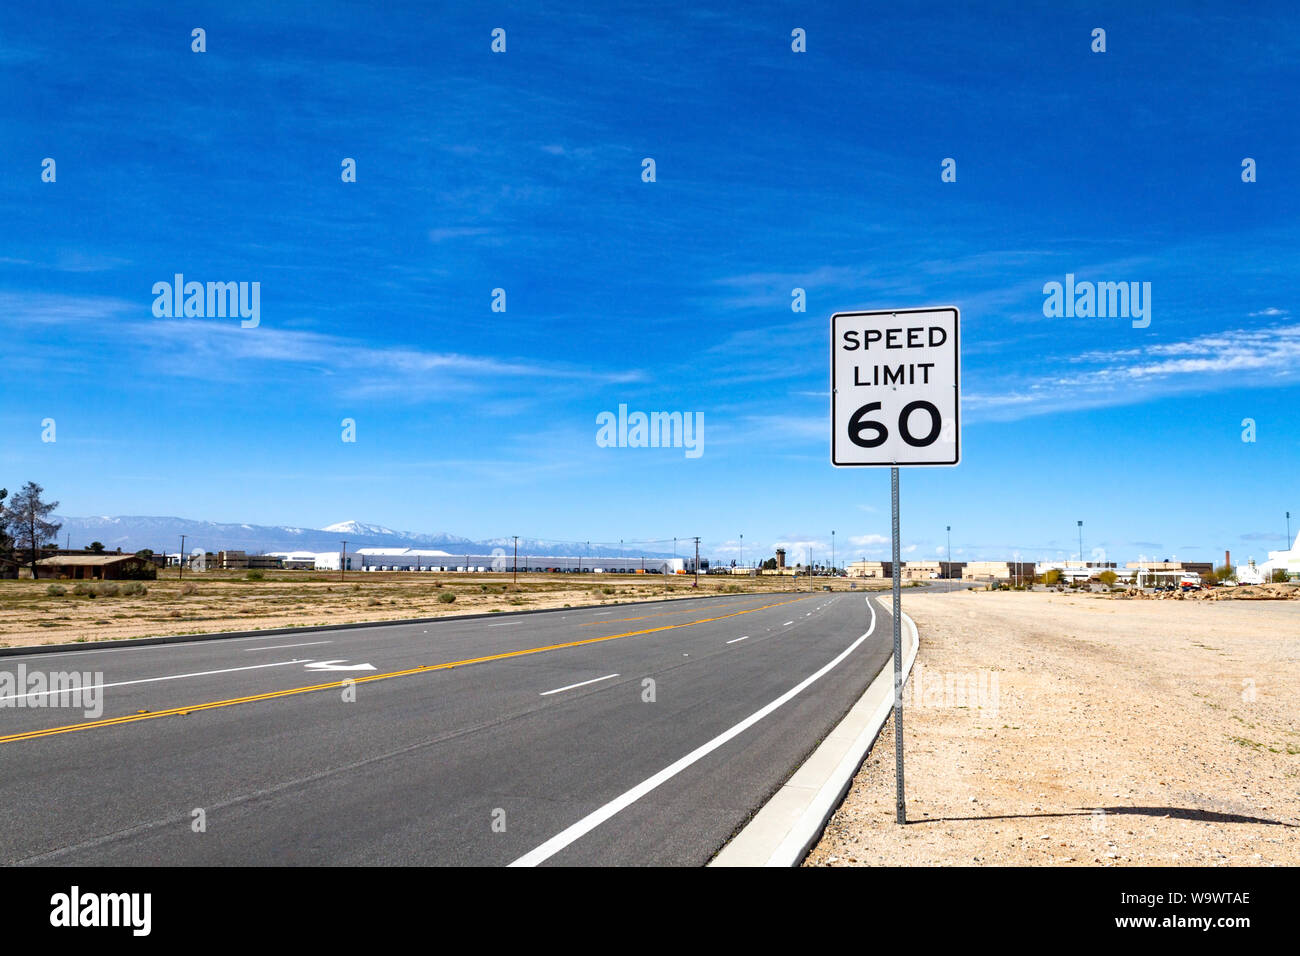 Speed Limit Sign 60 Stock Photos & Speed Limit Sign 60 Stock